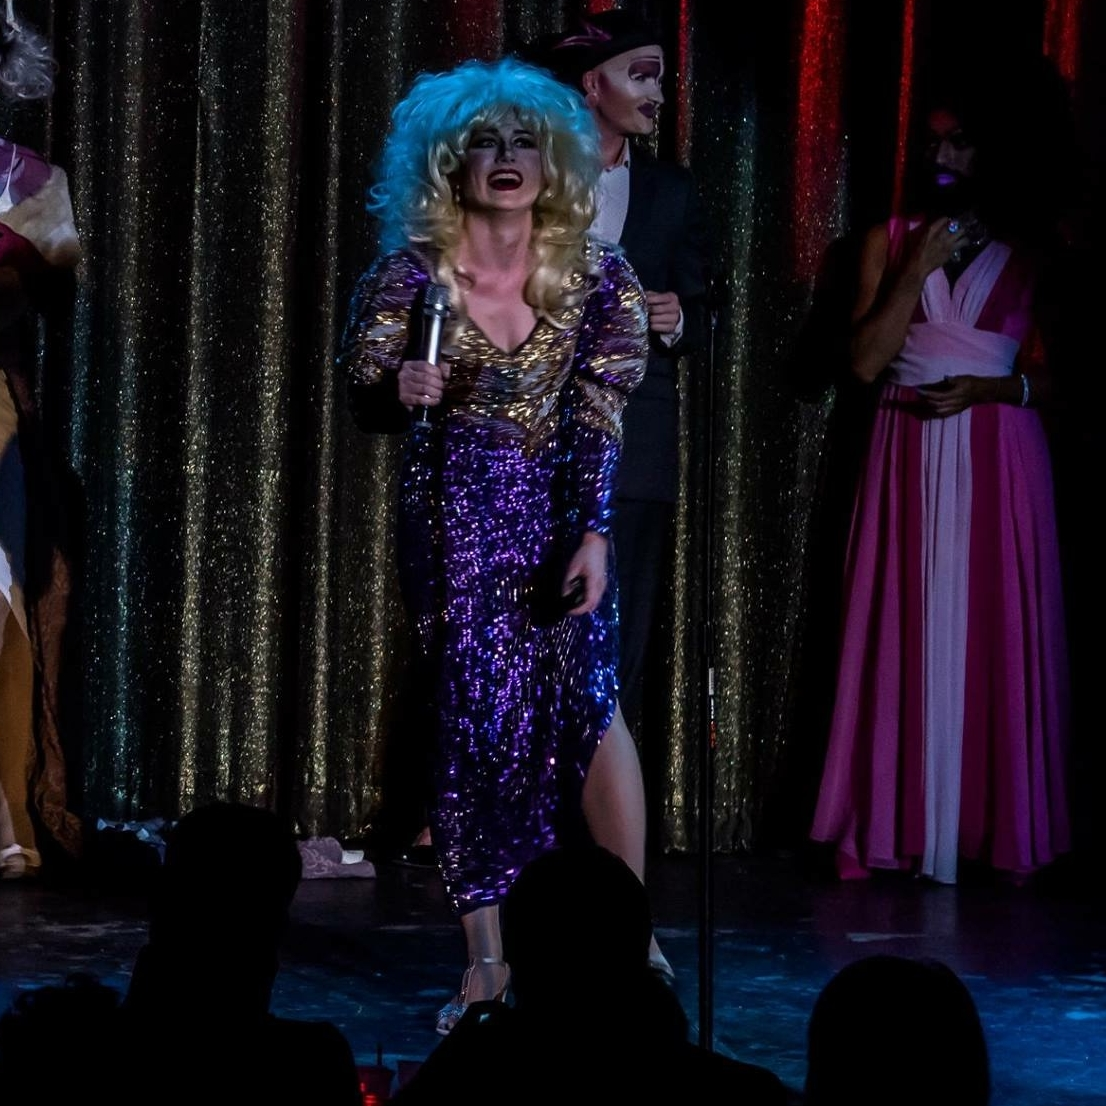 Mallory-Whitfield-drag-performer-Glamdromeda-pageant2-JulianOrrPhotgraphy.jpg